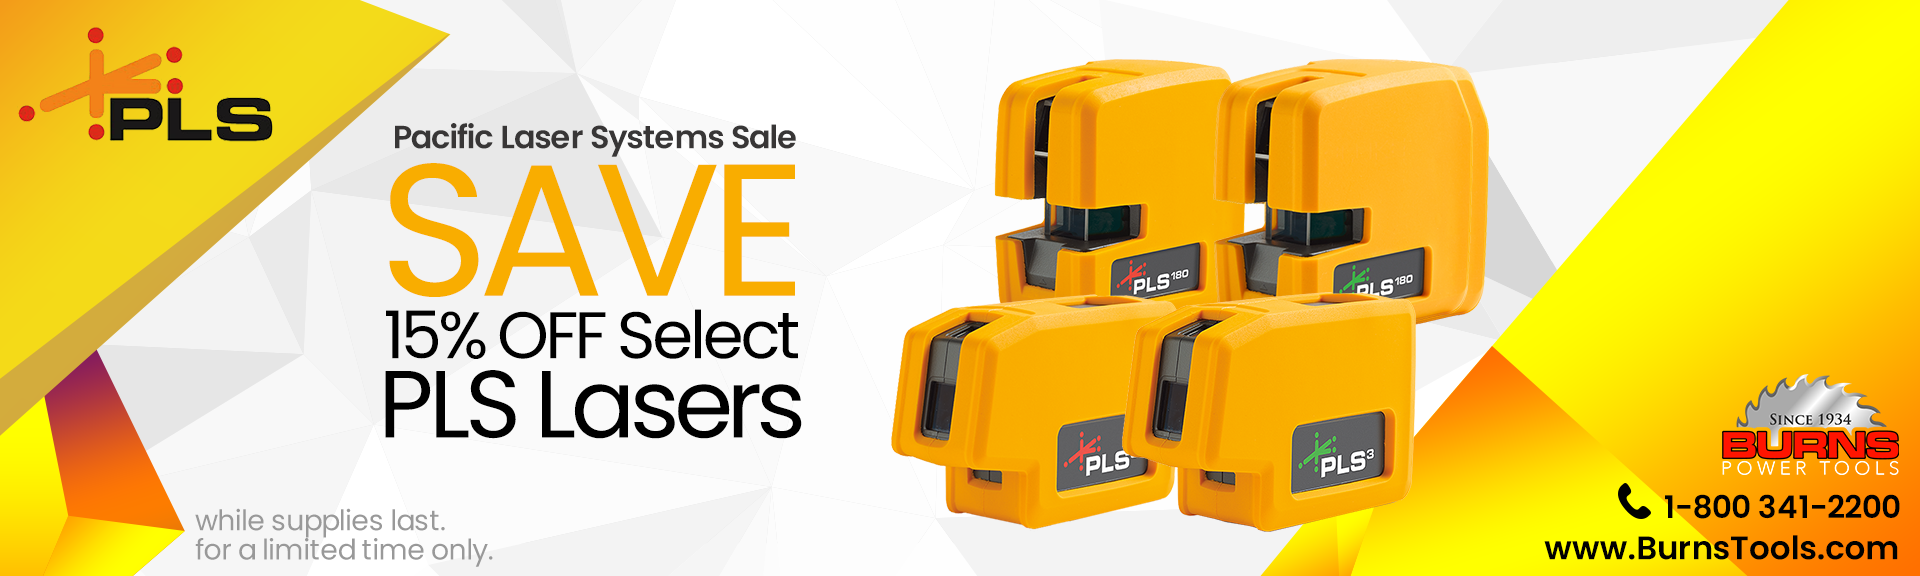 Pacific Laser Systems Sale